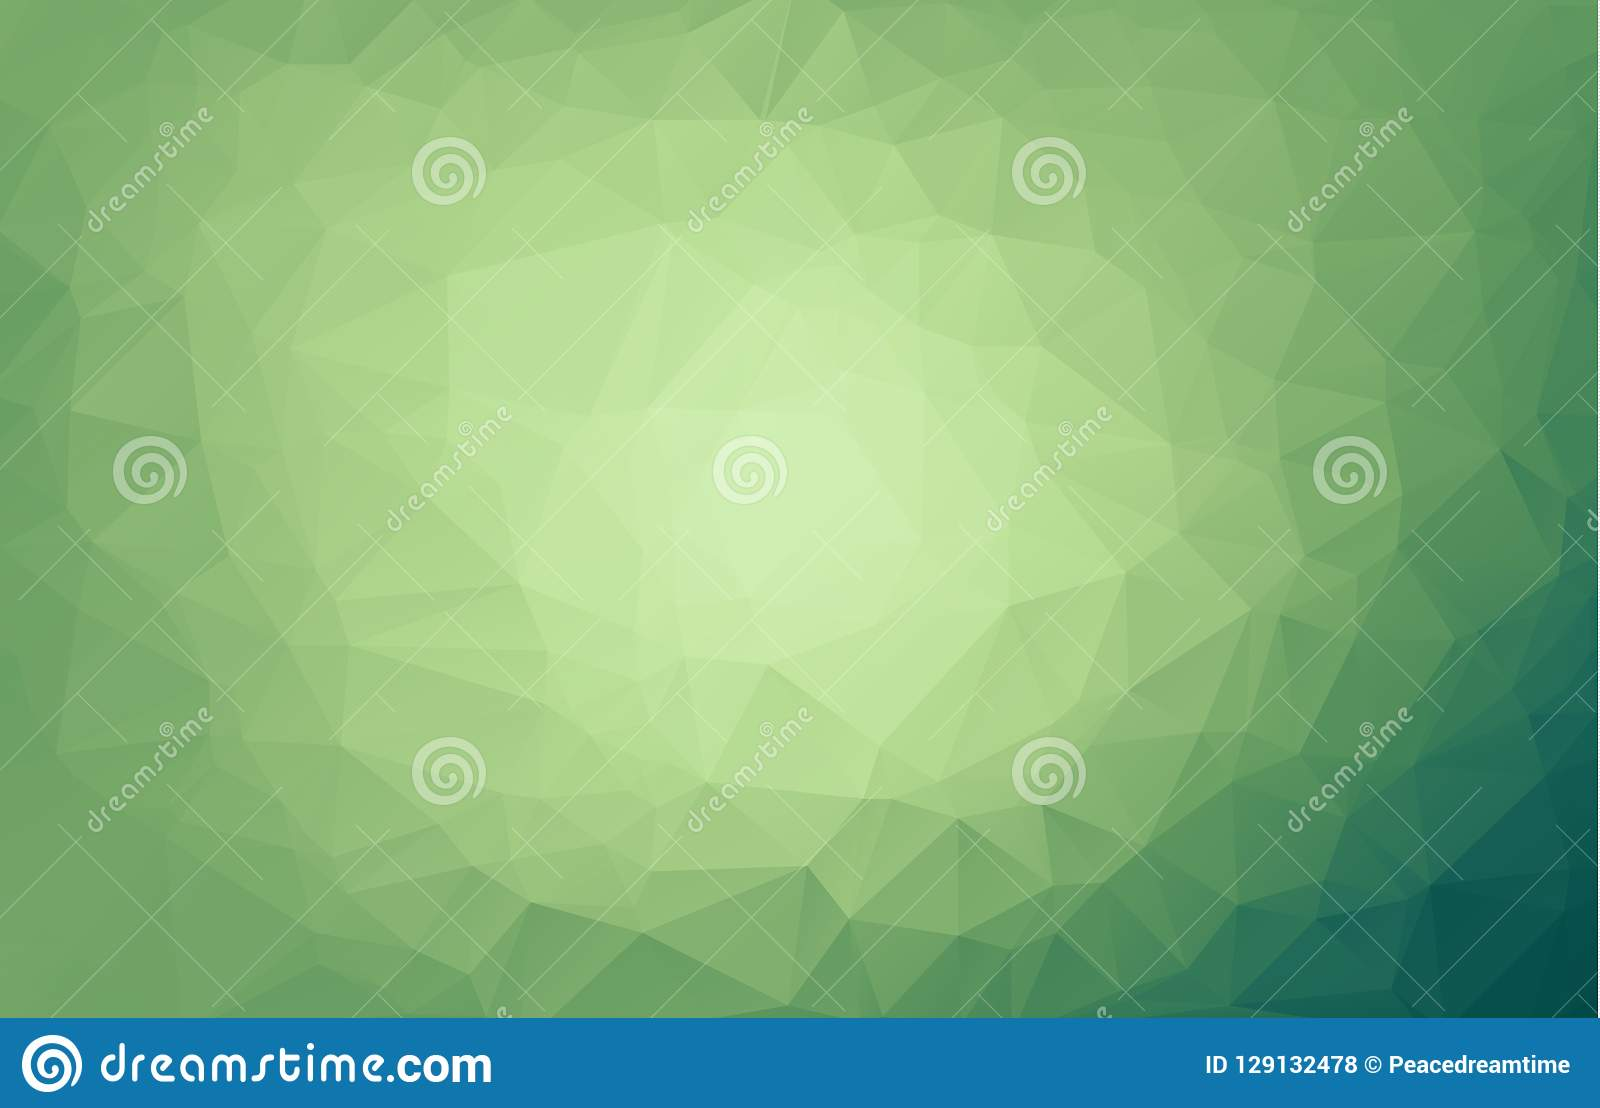 Light Green vector blurry triangle background. An elegant bright illustration with gradient. A completely new design for your busi